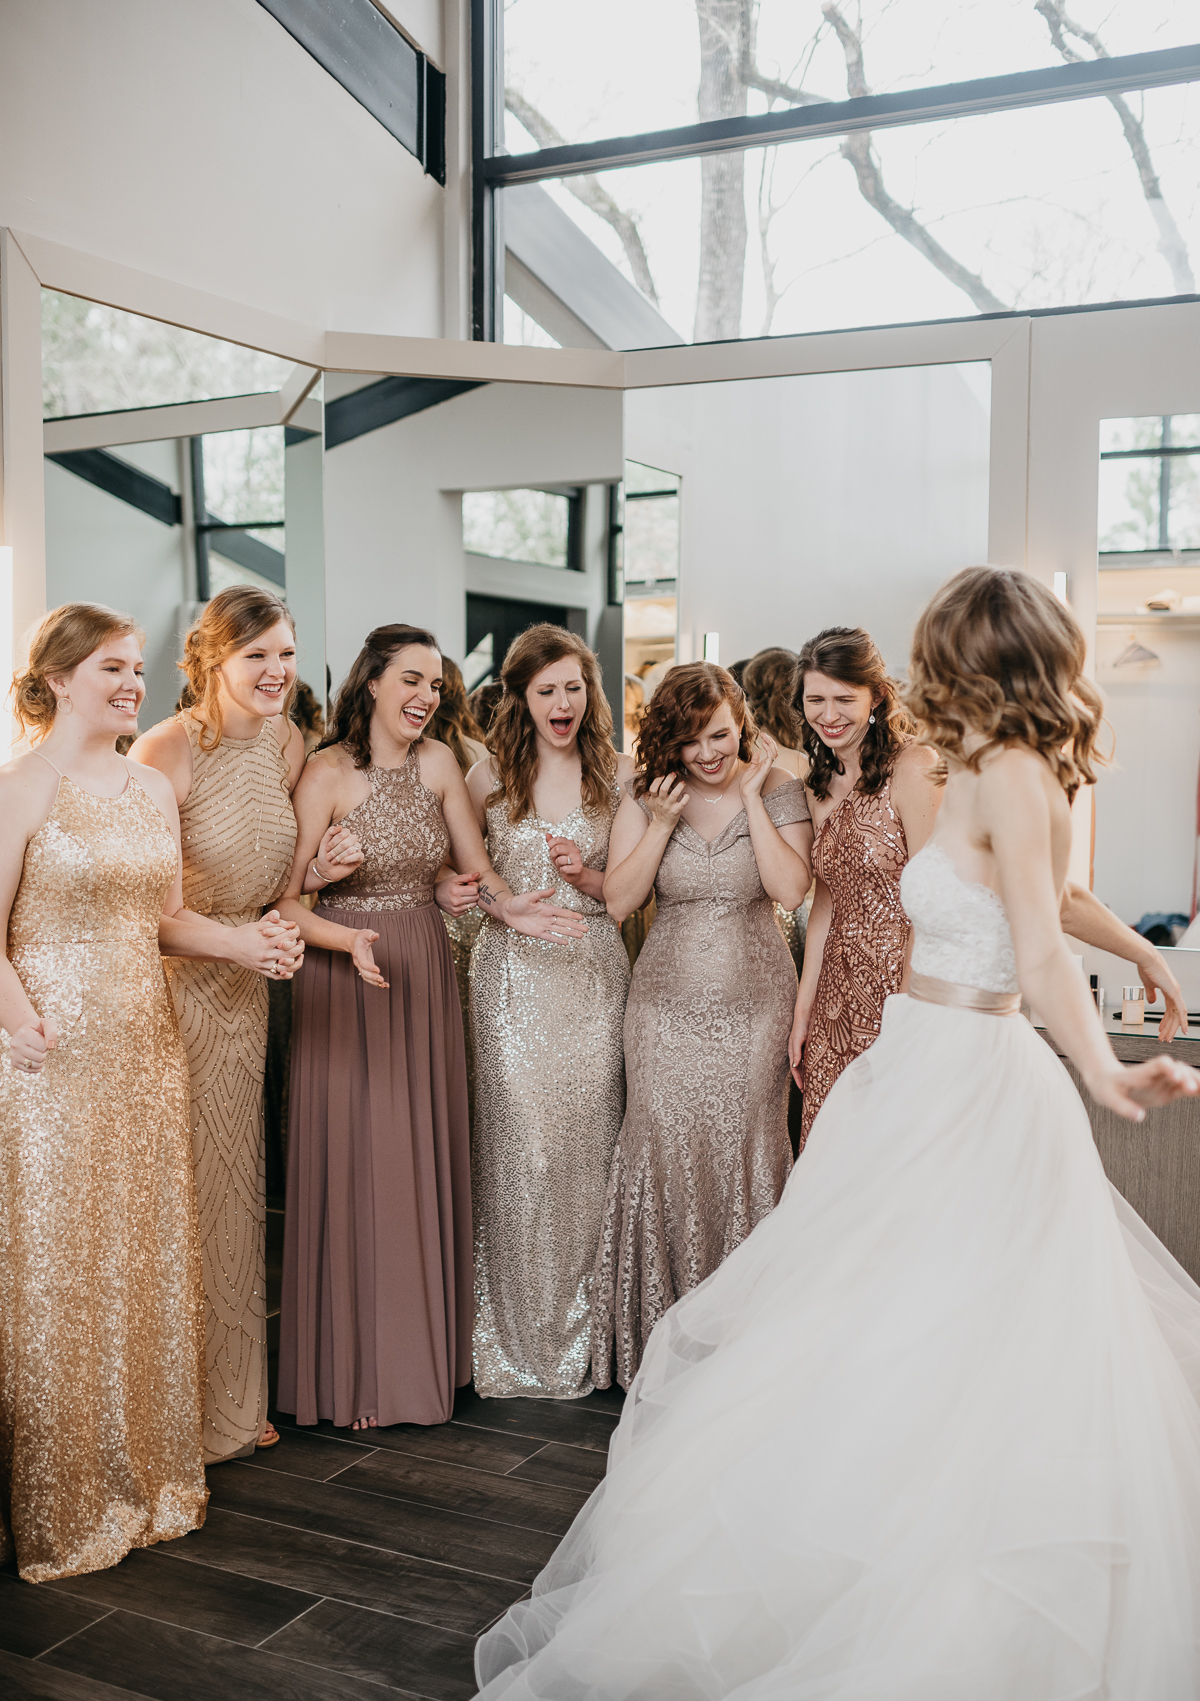 Modern elegant carefree nature wedding at Jennings Trace wedding venue in Conroe Texas camera shi photography